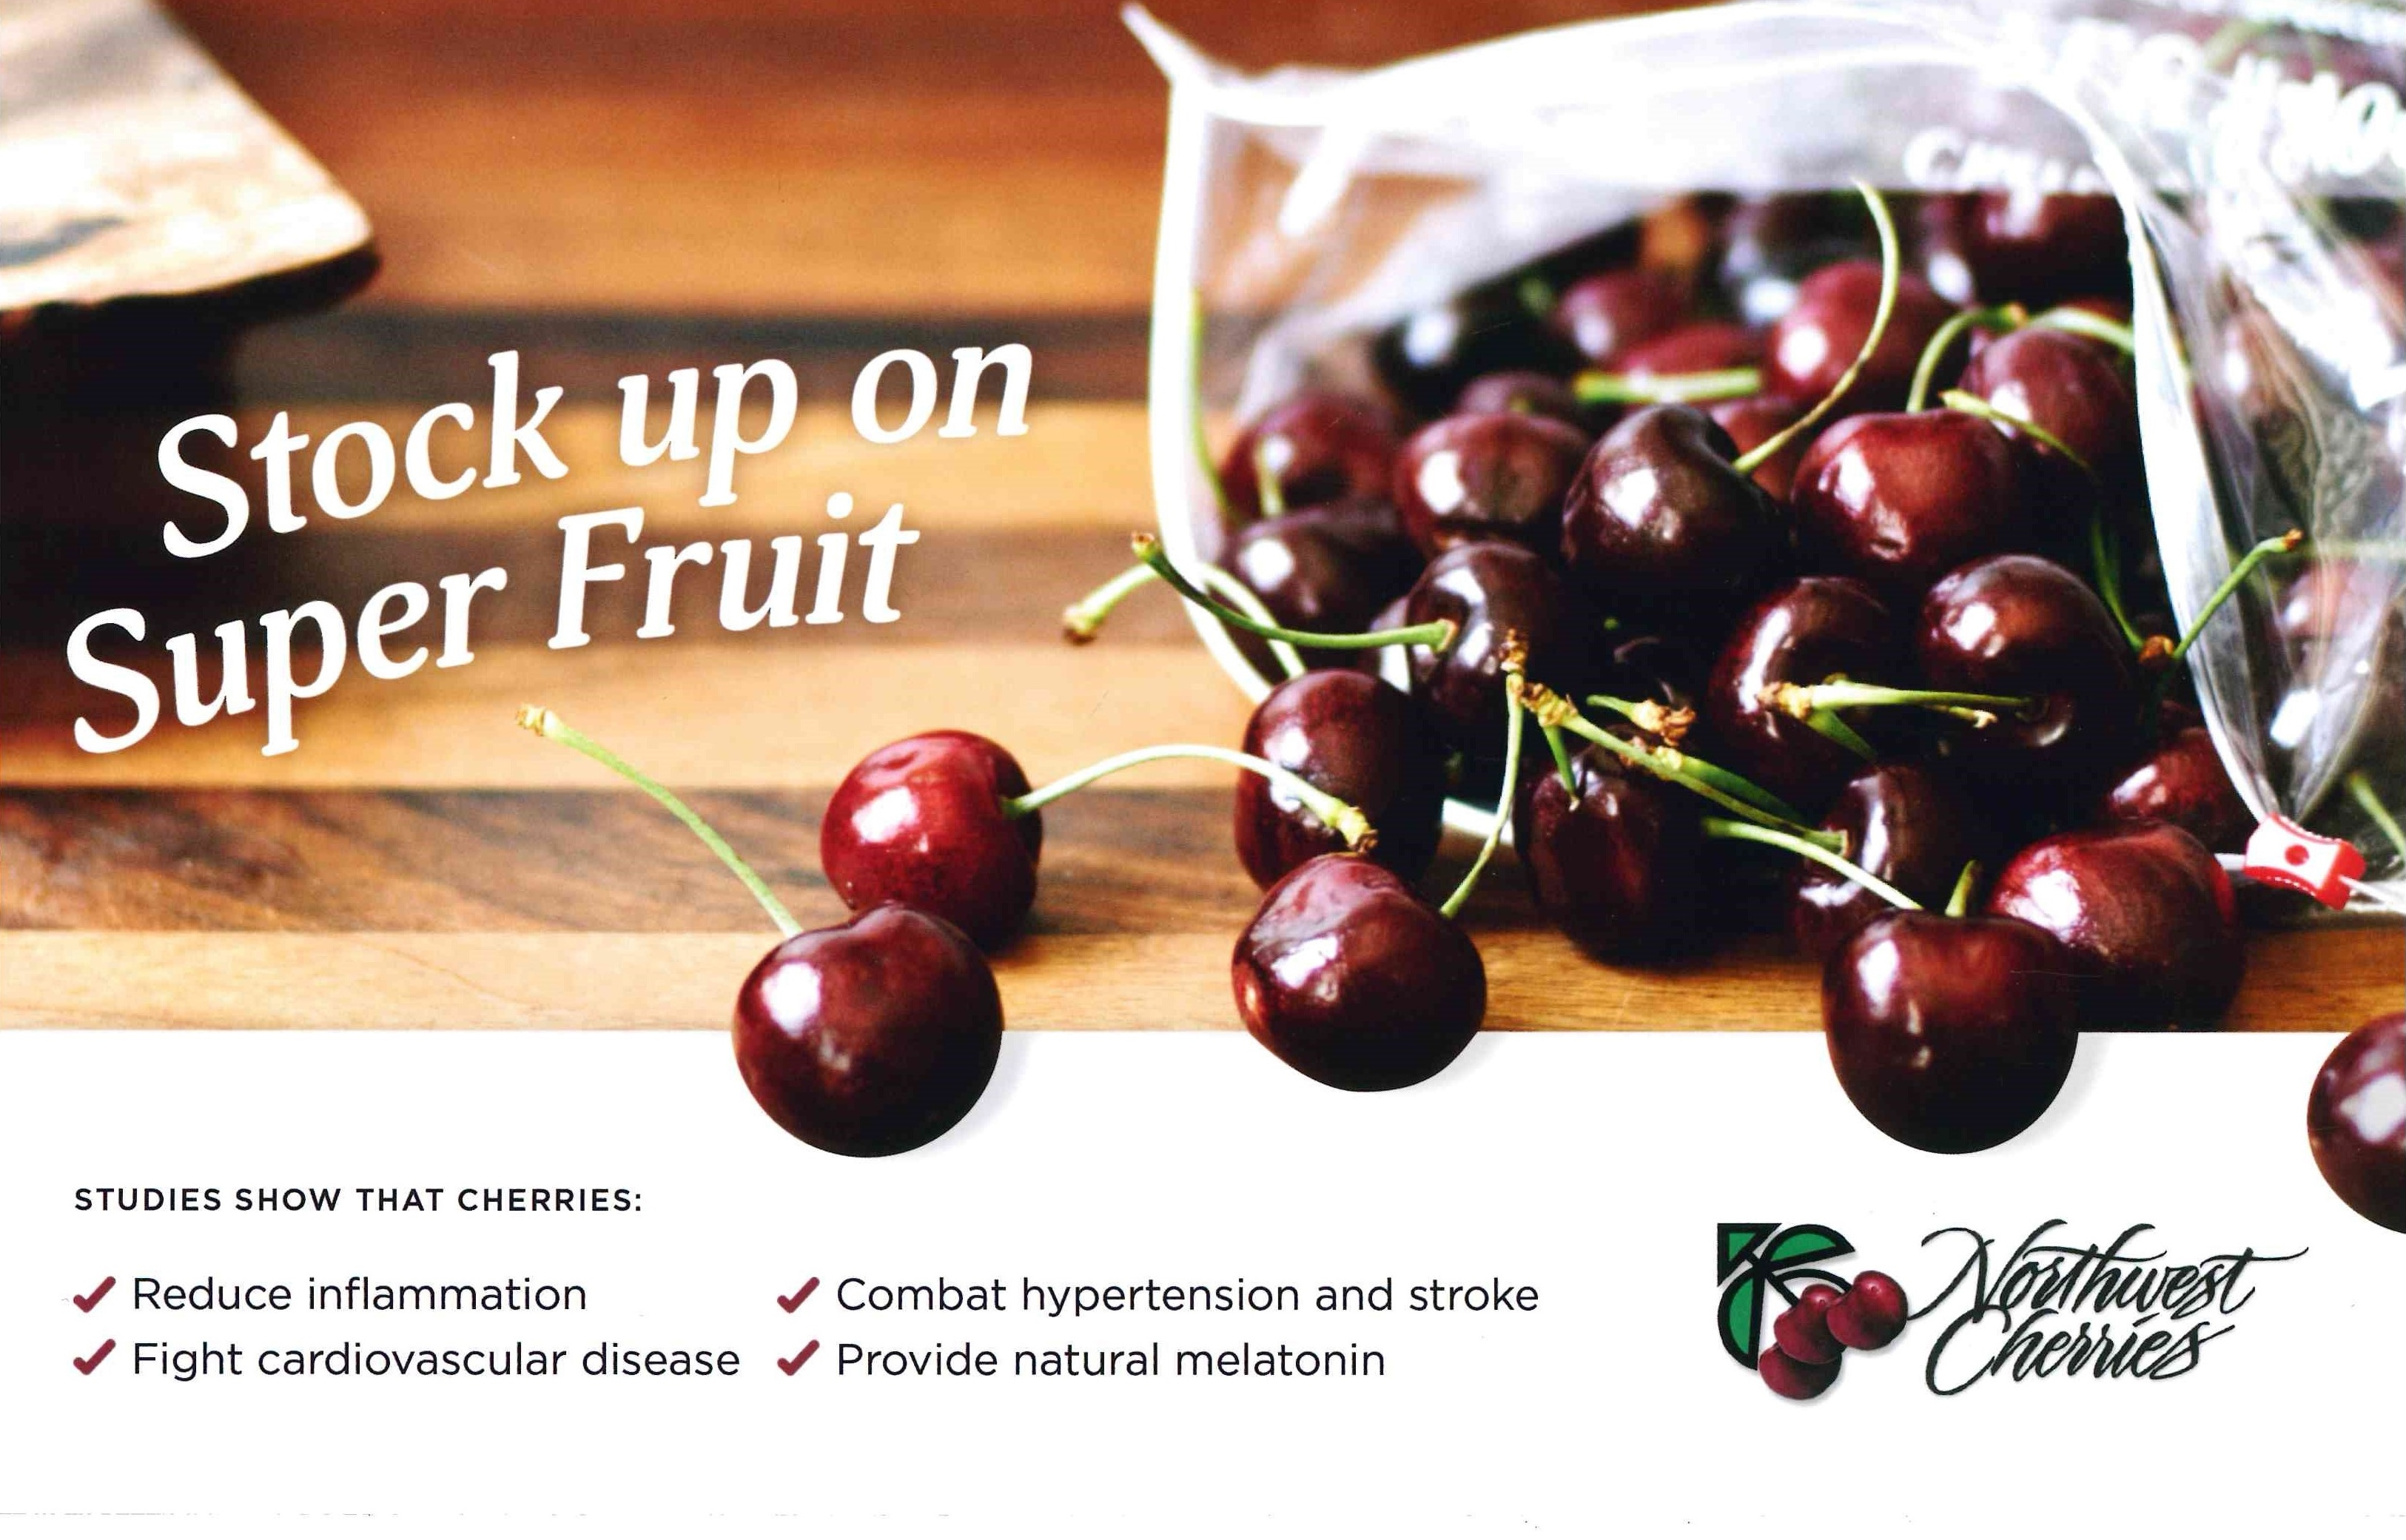 Stock Up on Superfruit POS CARD